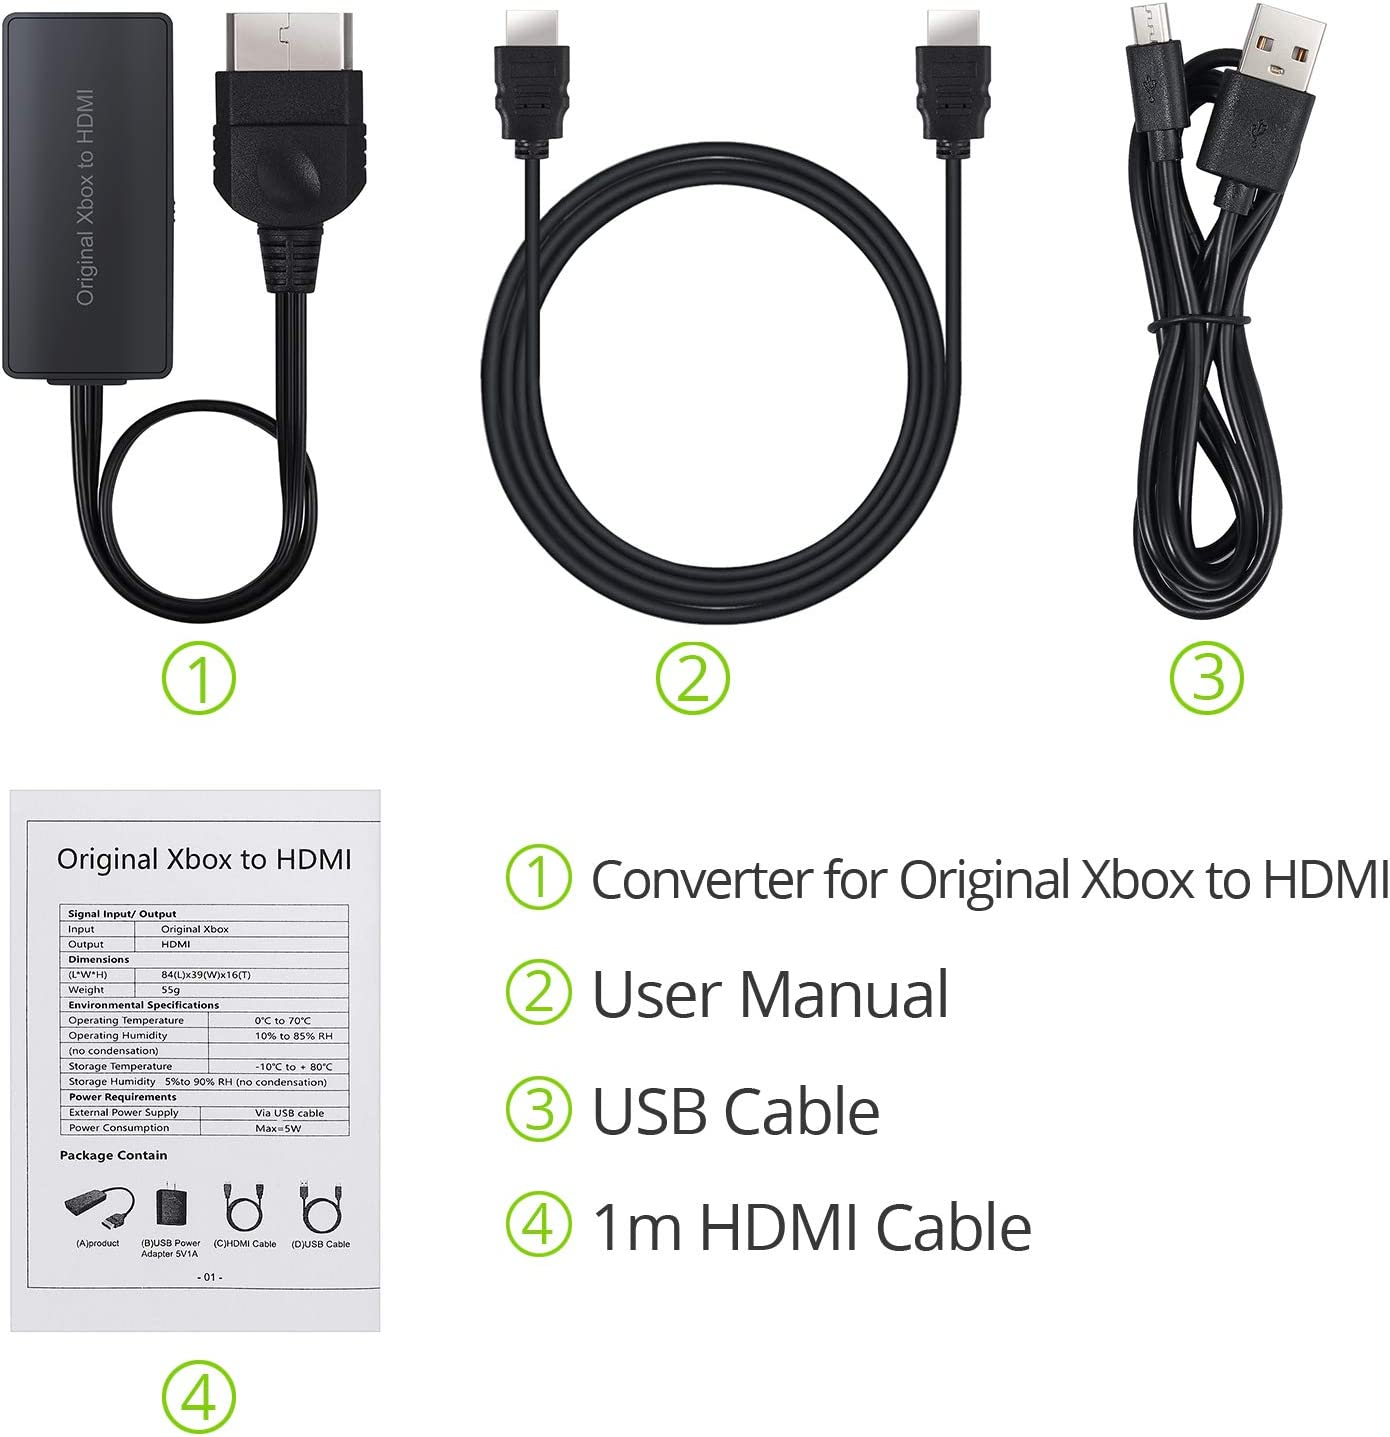 HD Link Cable for Original Xbox Support 1080P//720P with USB Cable HDMI Cable CAMWAY Converter Adapter for Original Xbox to HDMI